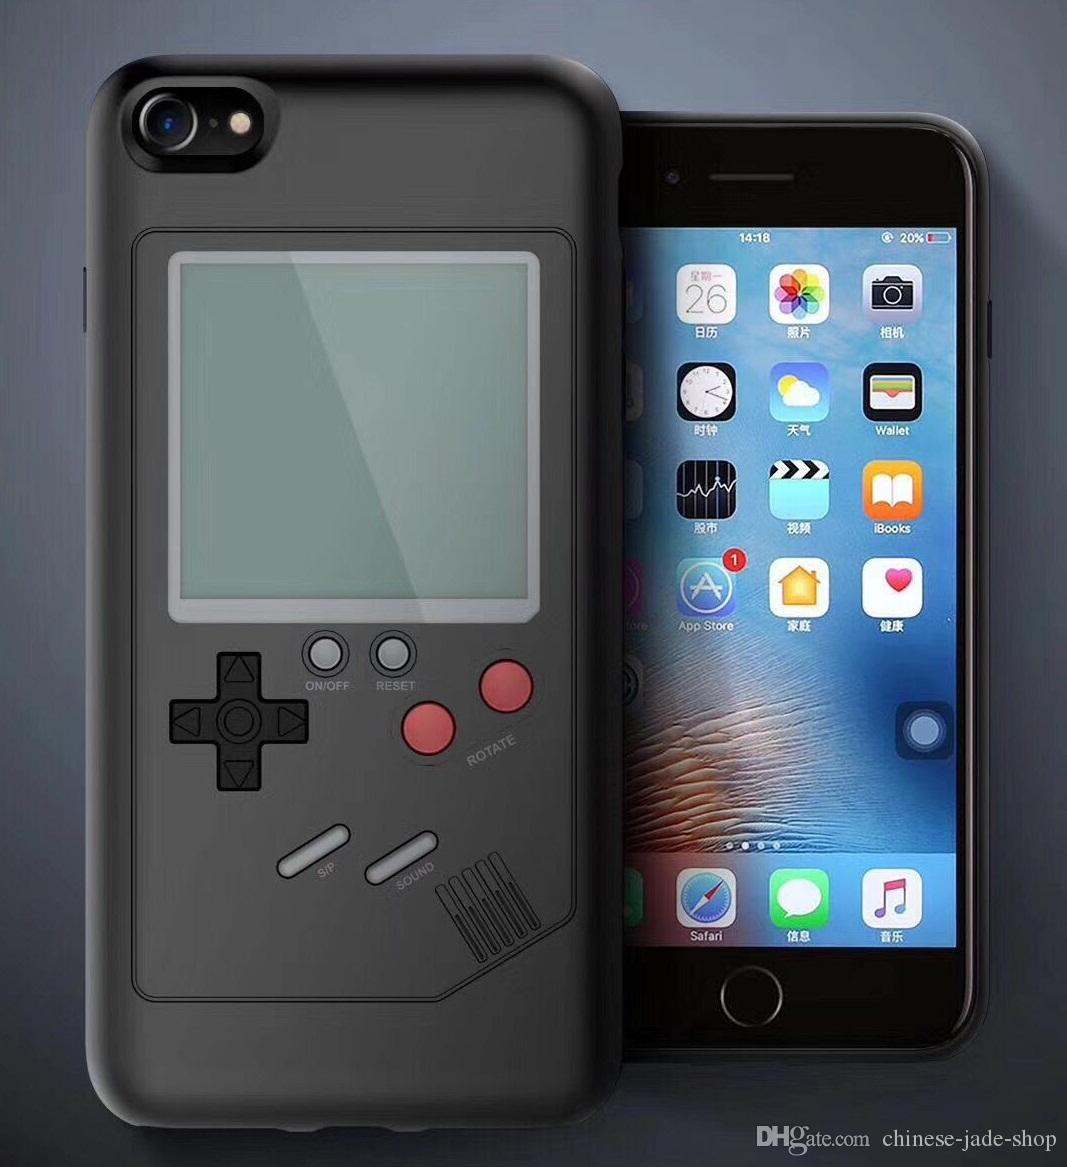 3D Russian Game Retro Game Consoles Phone Back Game case TPU for iPhone X 6 6s 7 8 plus Cover Shockproof Protection Shell Retail package 30P